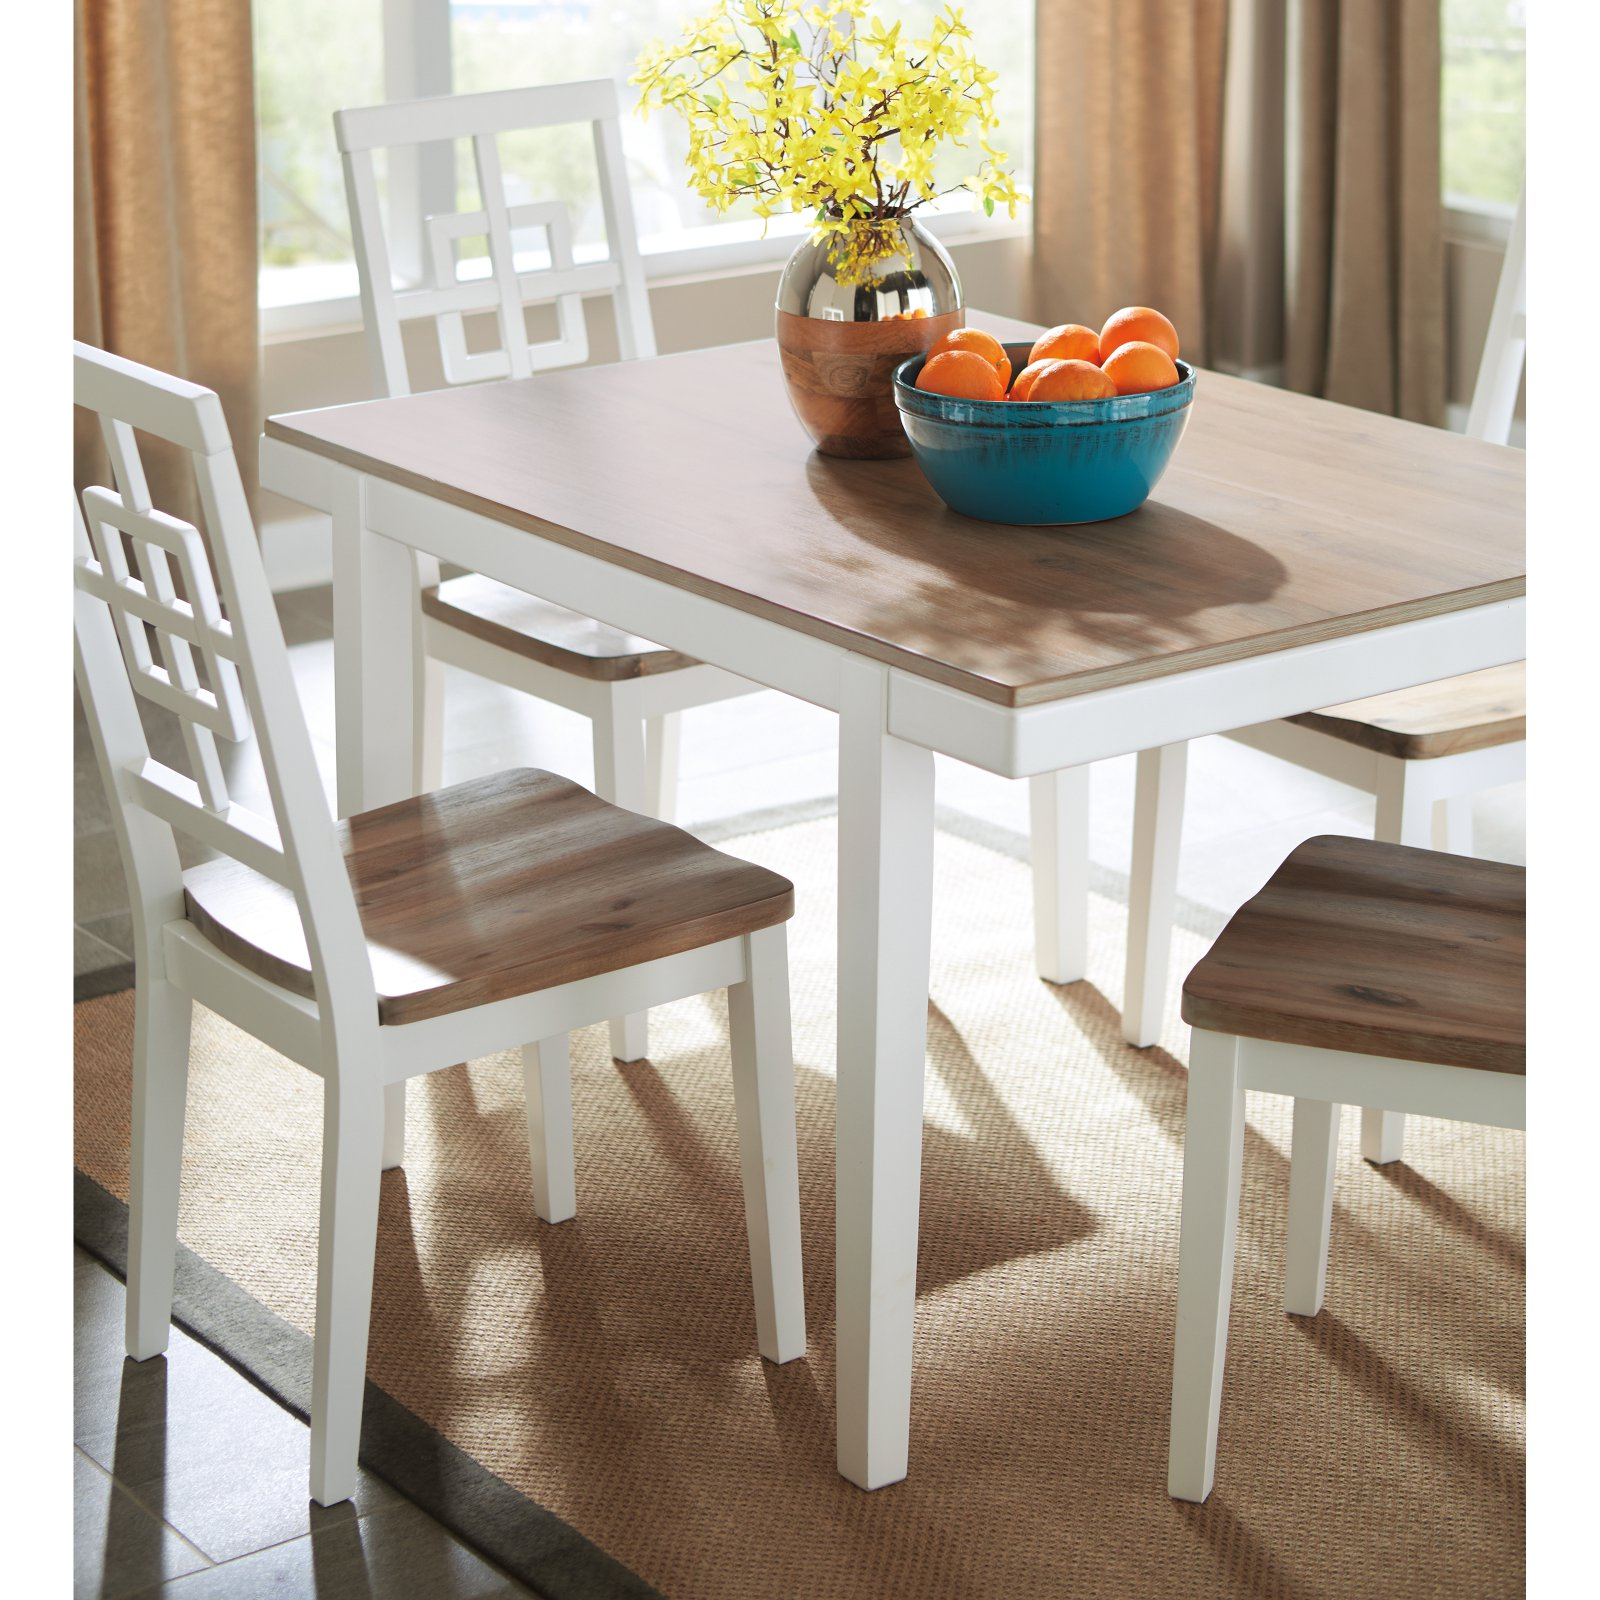 Signature Design by Ashley Brovada Rectangular Dining Table Set